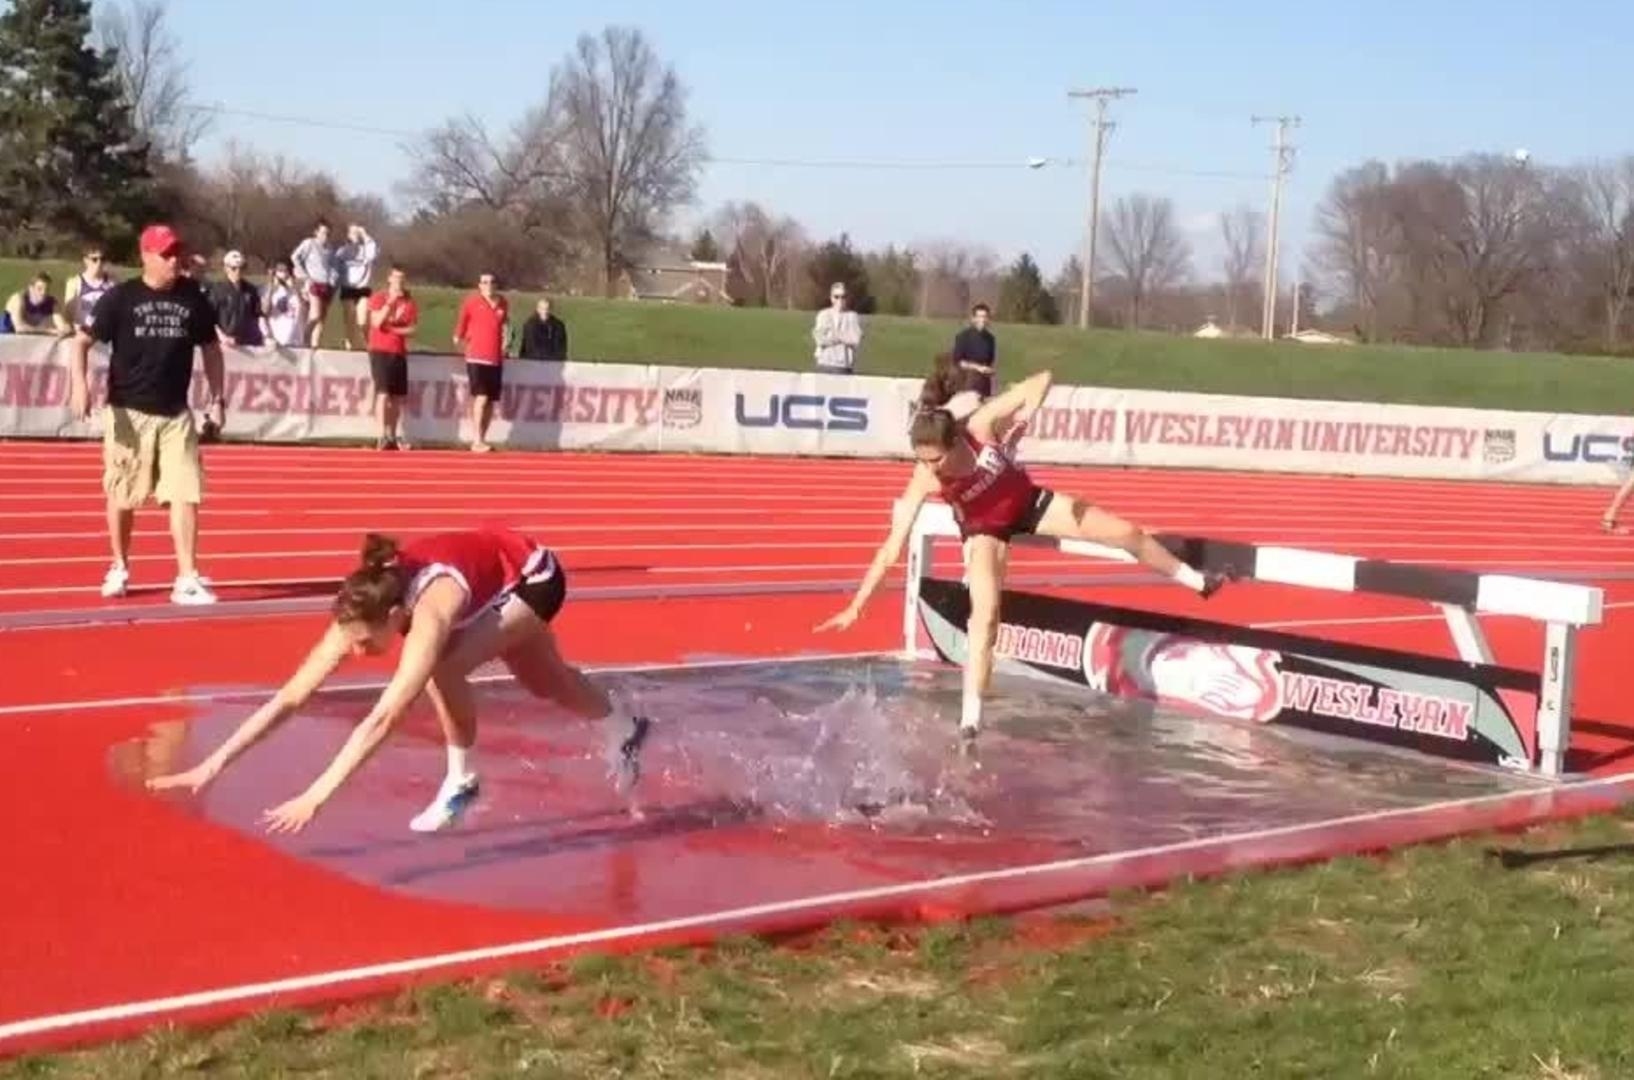 Steeplechase runner faceplants into water jukin media for Steeple chase